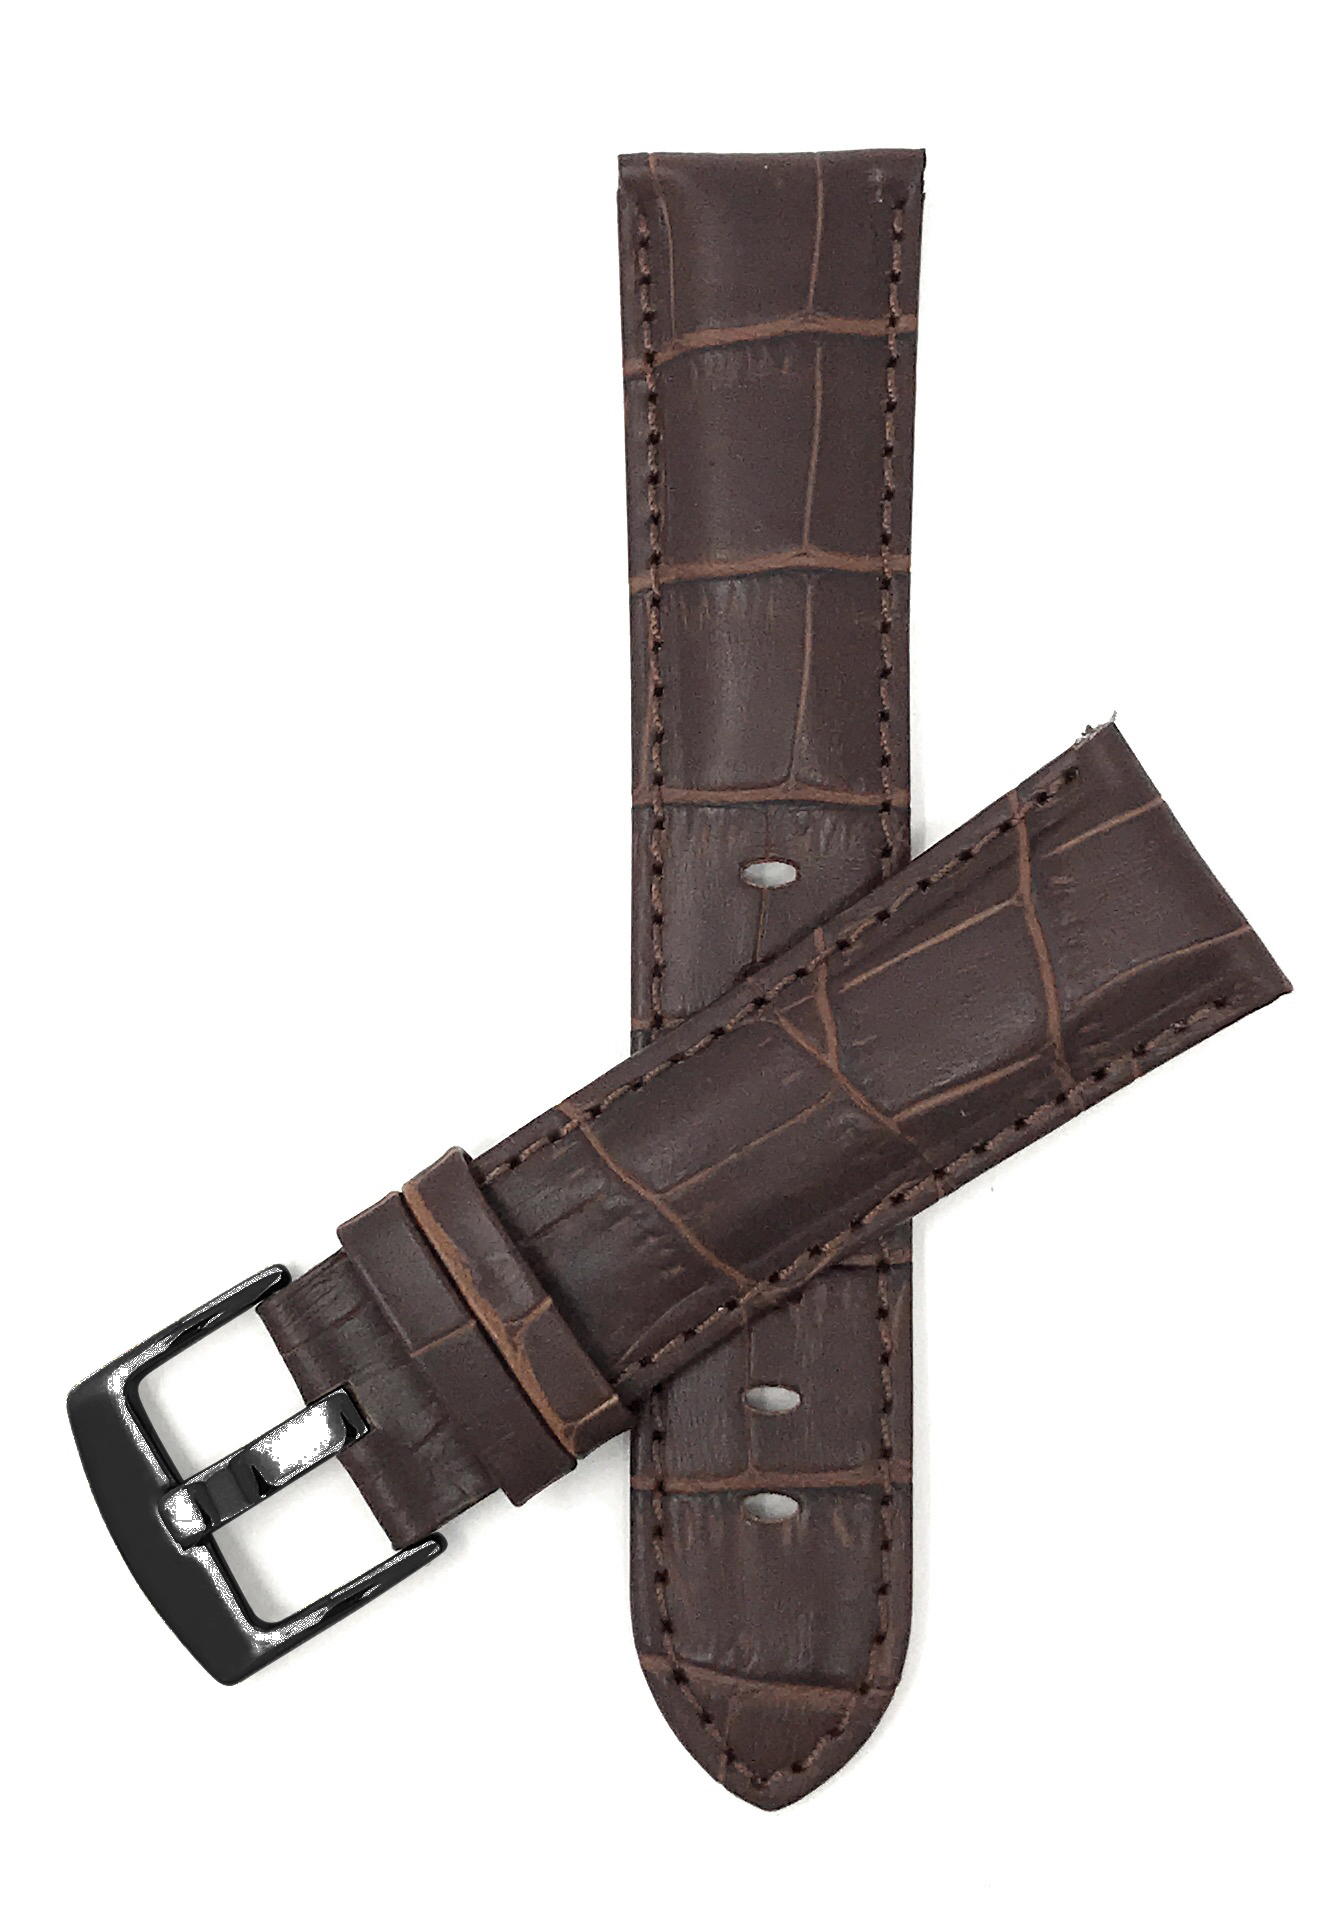 Bandini-Mens-Watch-Band-Alligator-Style-Leather-Strap-18mm-26mm-15-Colors thumbnail 12